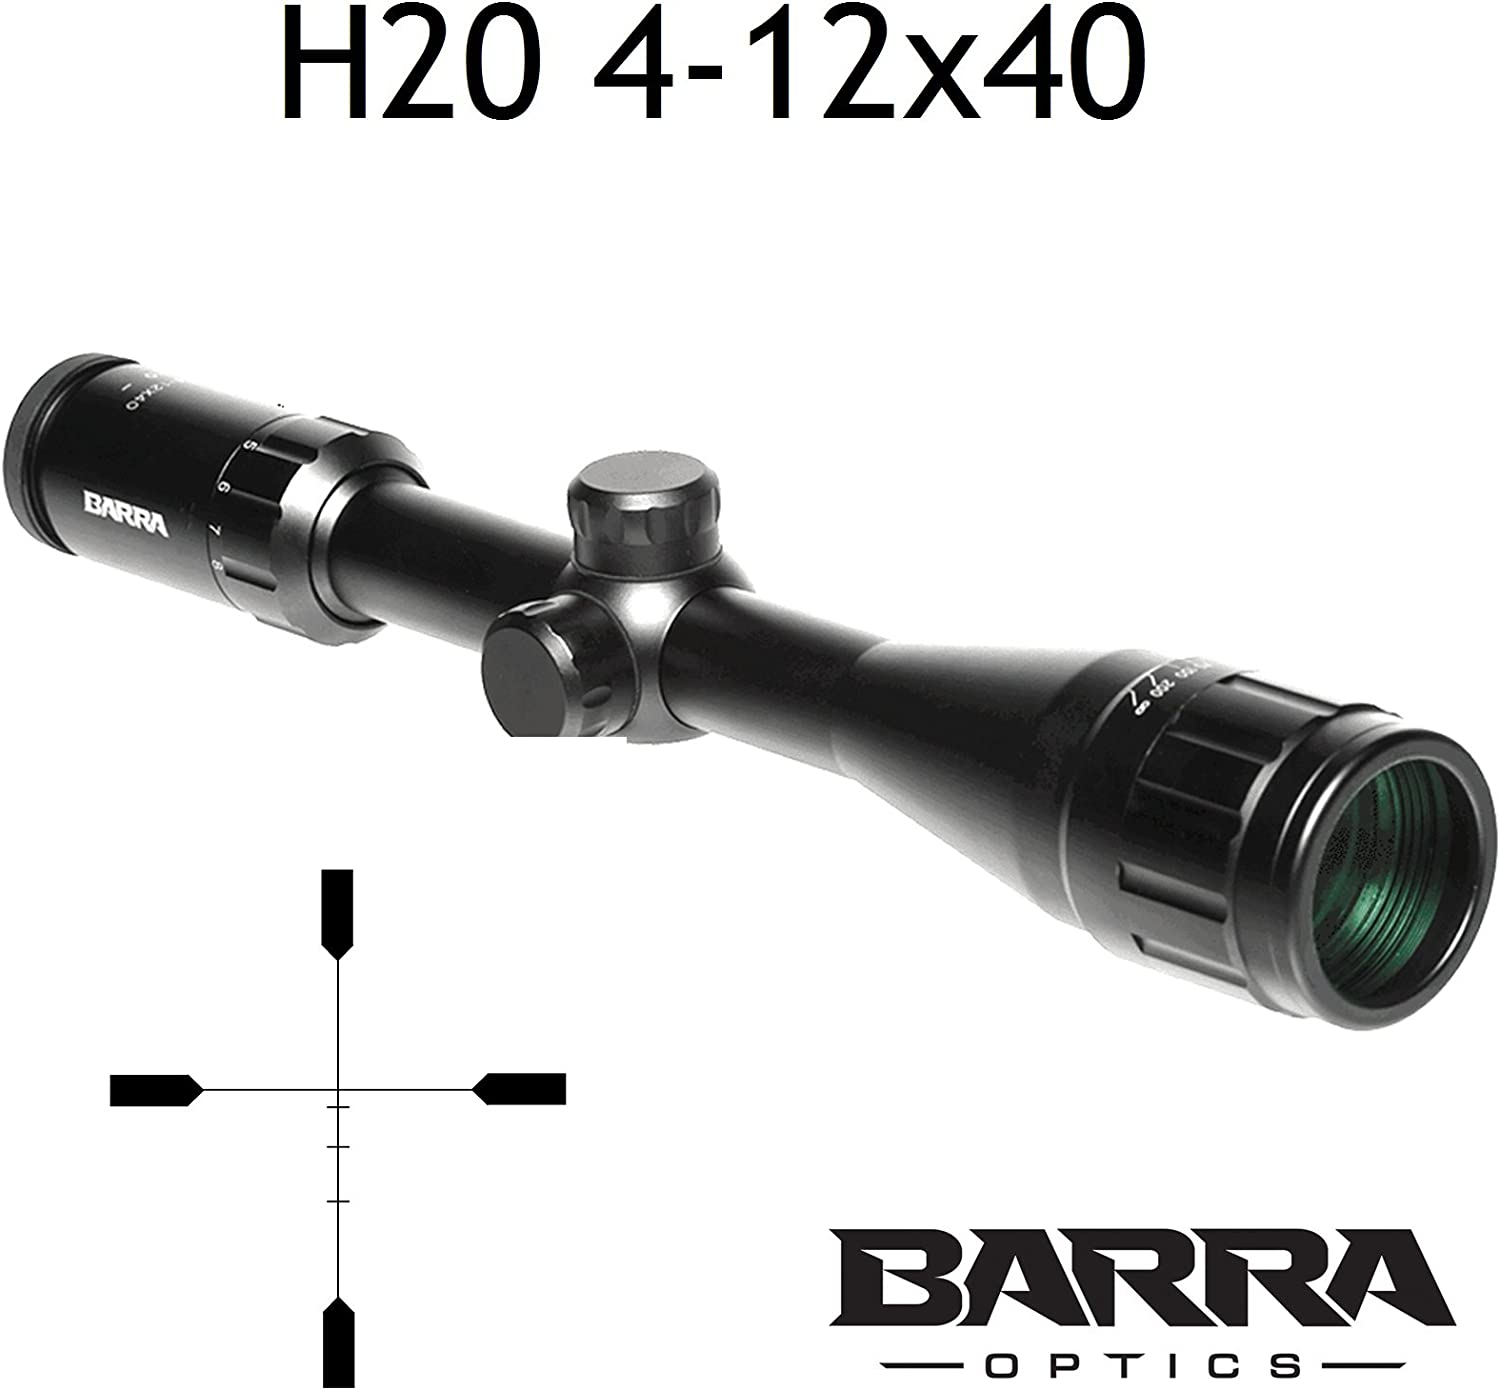 Barra Rifle Scope, BDC Reticle Capped Turrets for Hunting Shooting Precision Deer Hog Venison Varmint